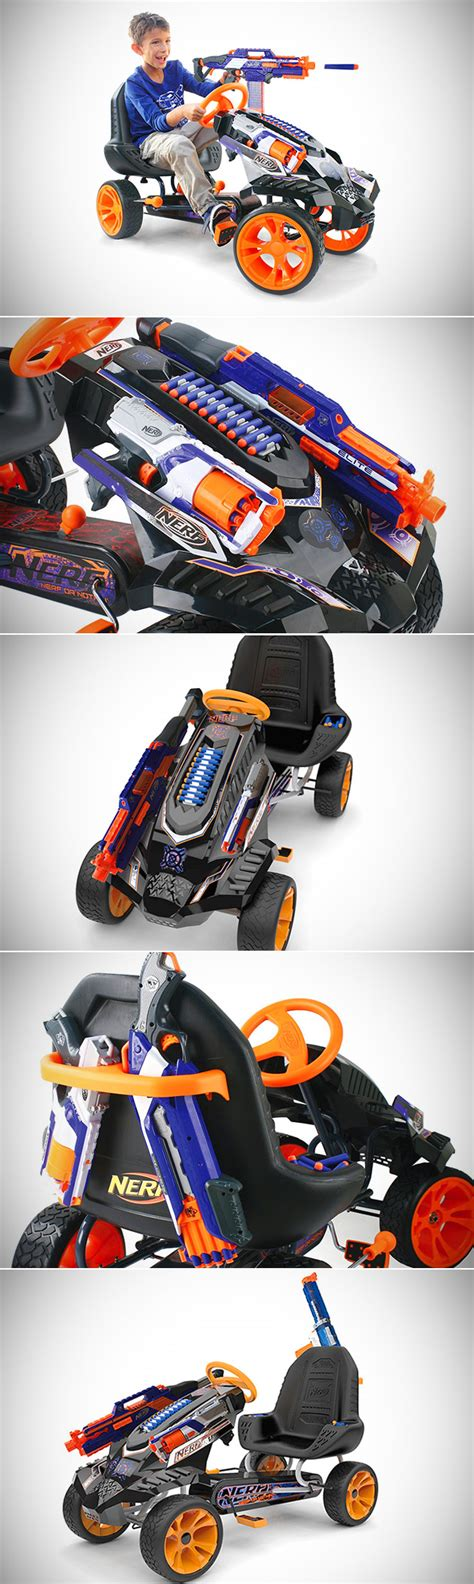 nerf battle racer nerf battle racer carries up to 4 blasters might be